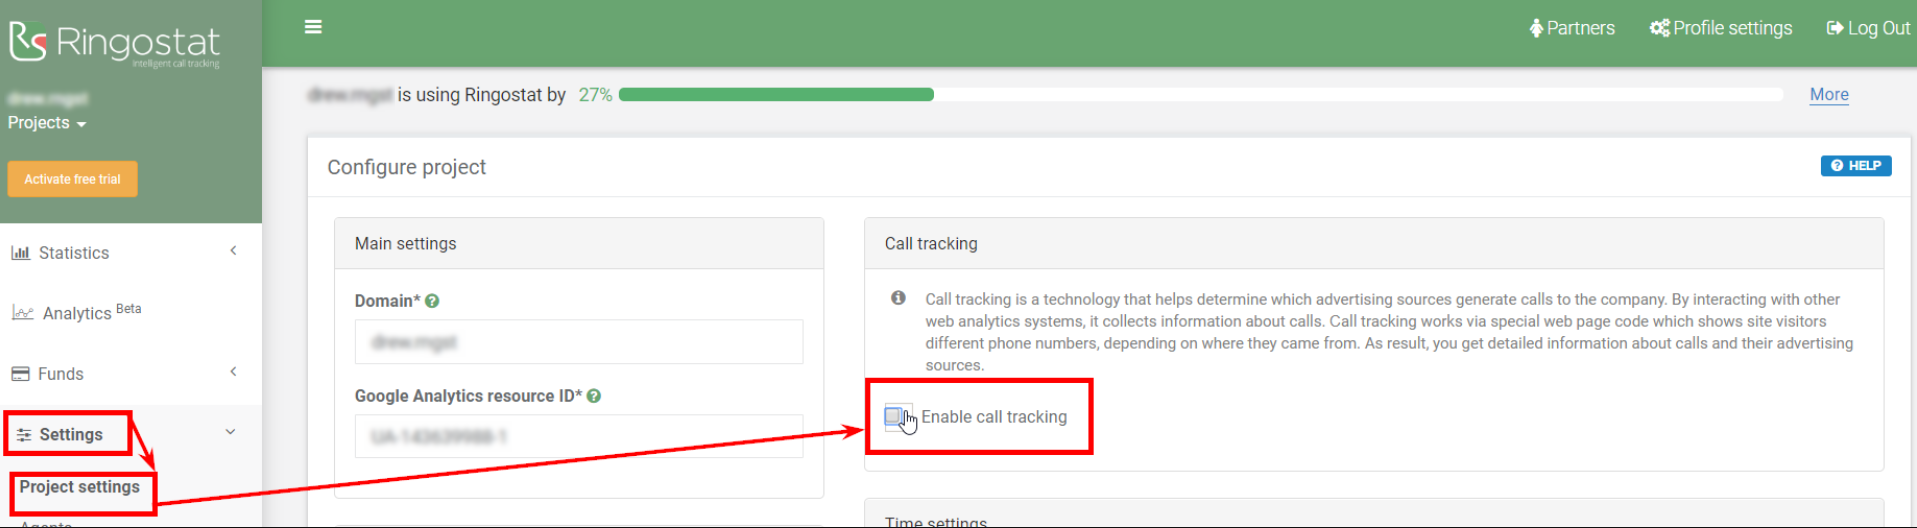 How to enable call tracking in Ringostat